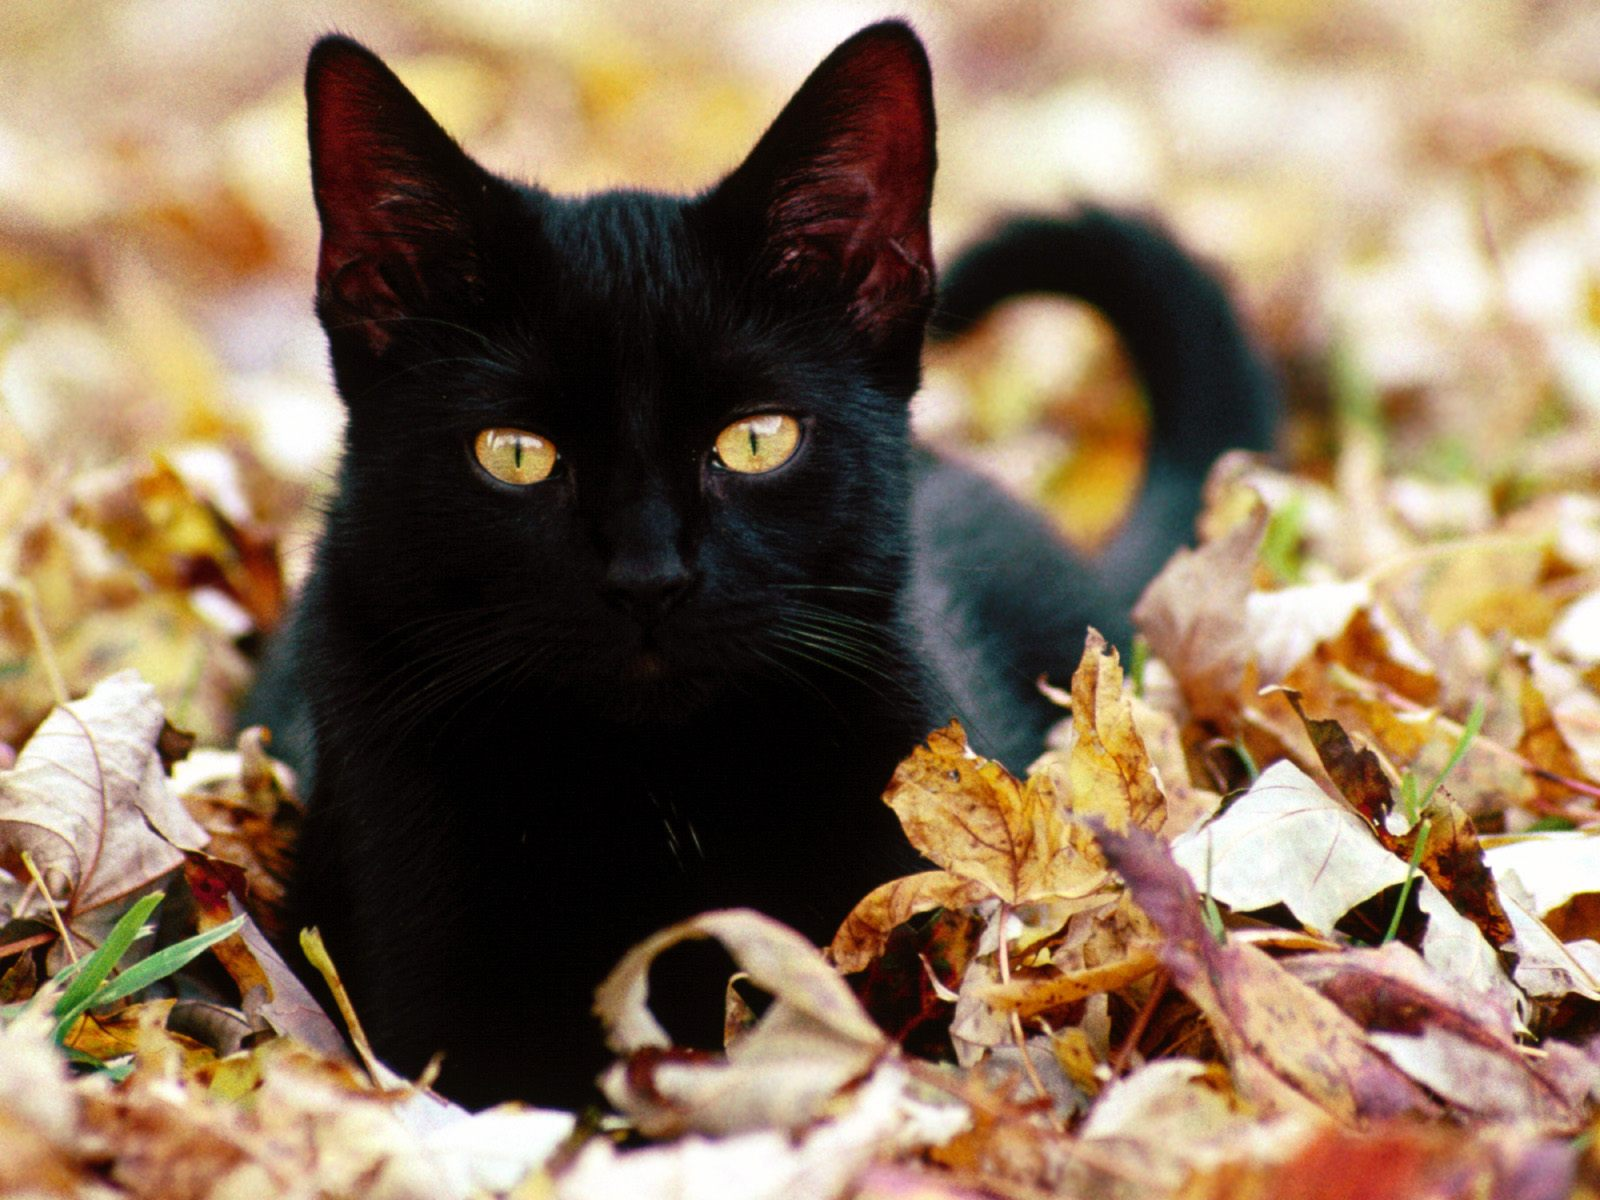 click to free download the wallpaper--Cute Cats Picture, Black Kitten on Brown Leaves, Mysterious and Powerful 1600X1200 free wallpaper download